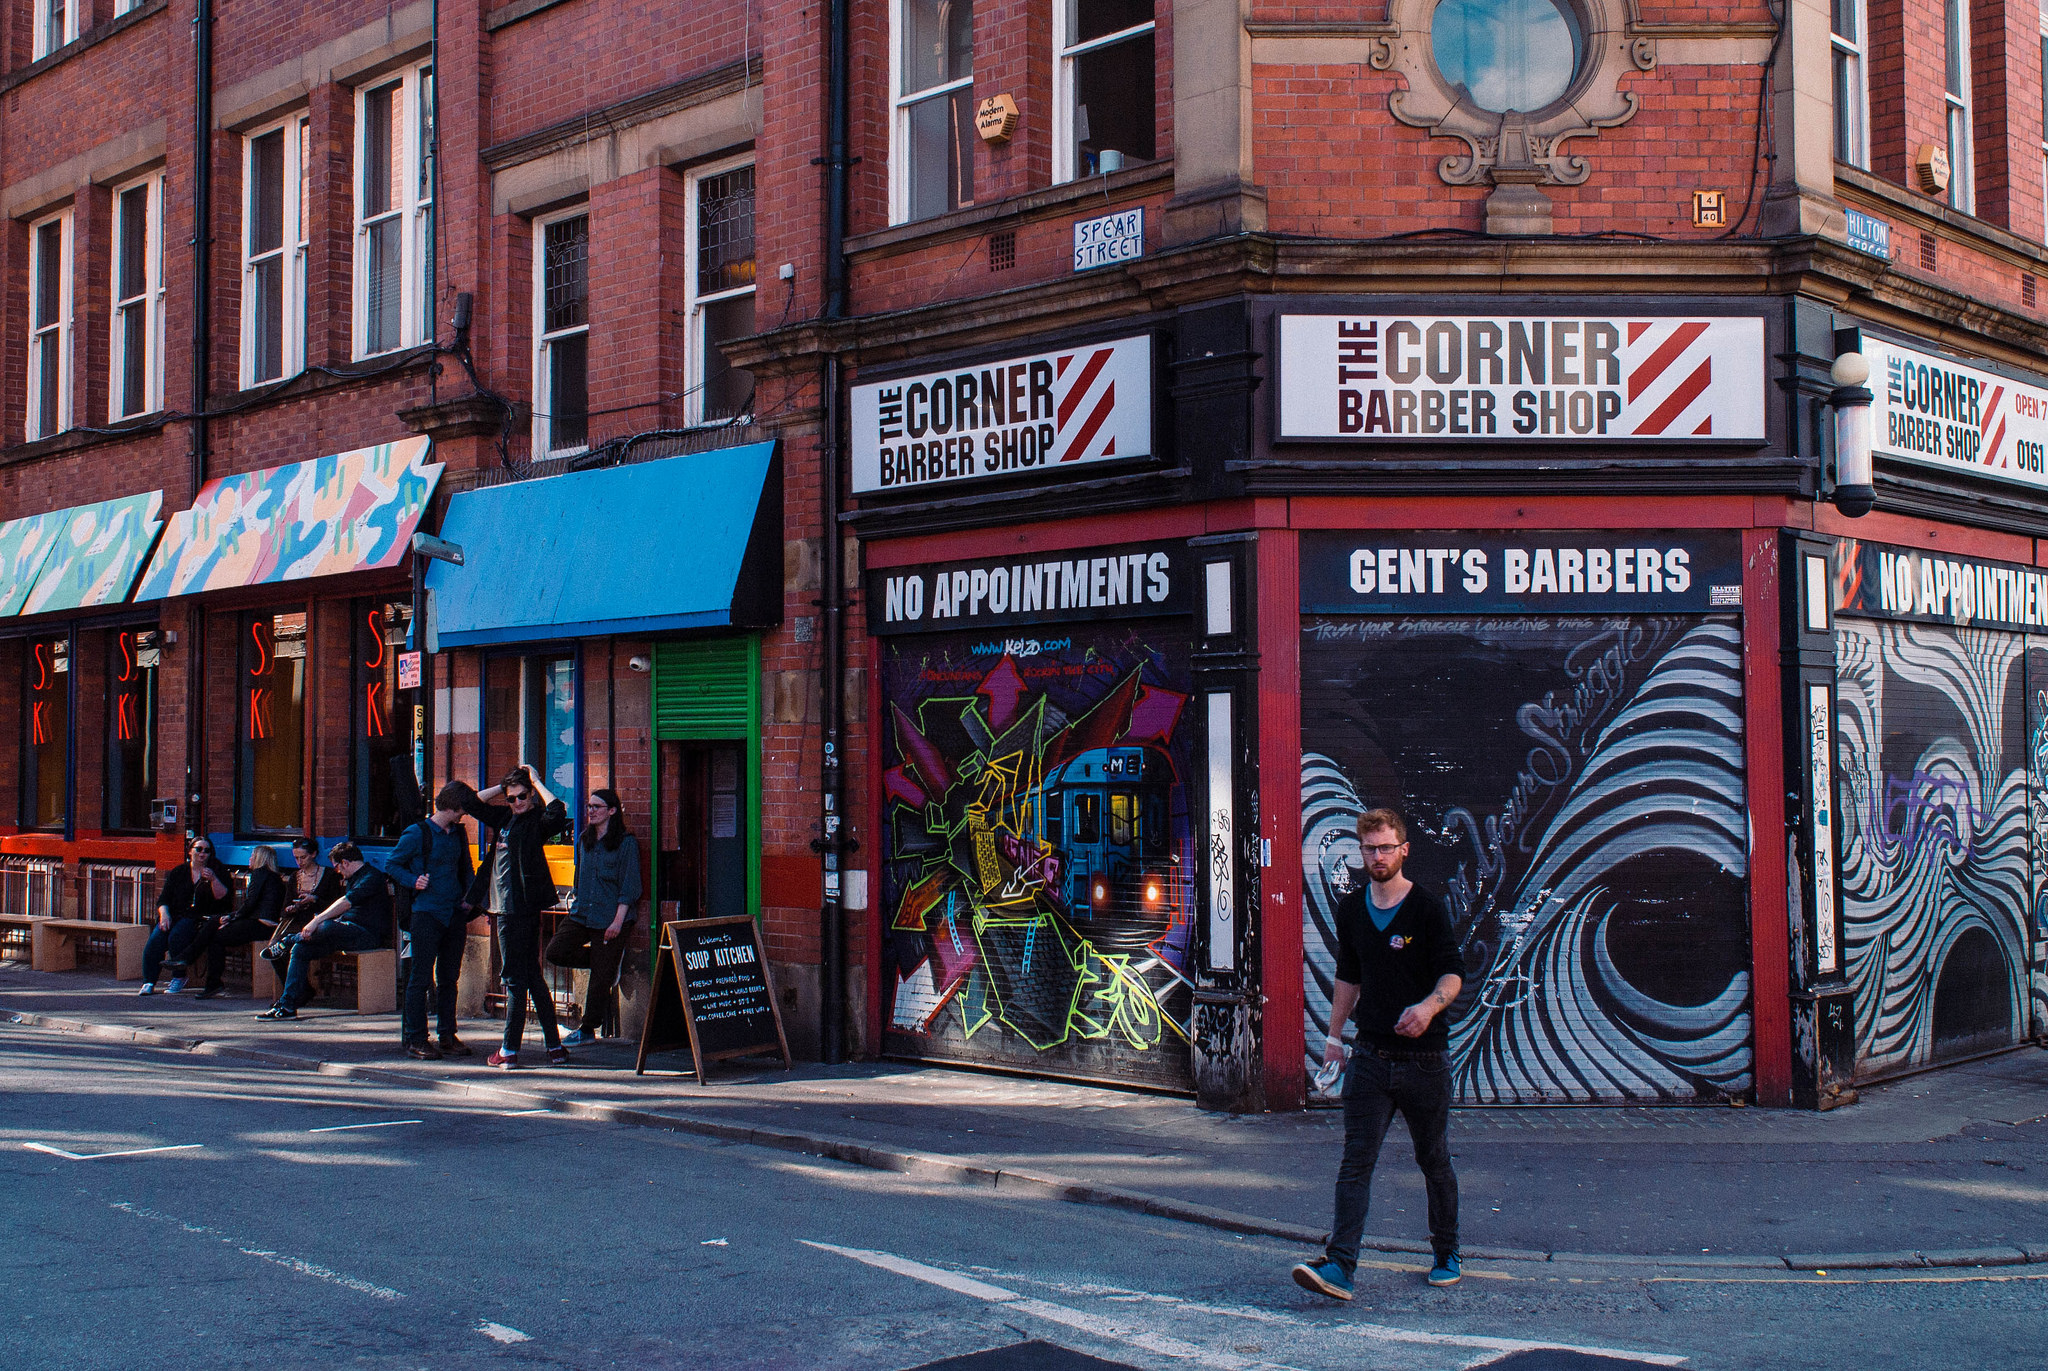 How to spend a day in manchesters northern quarter